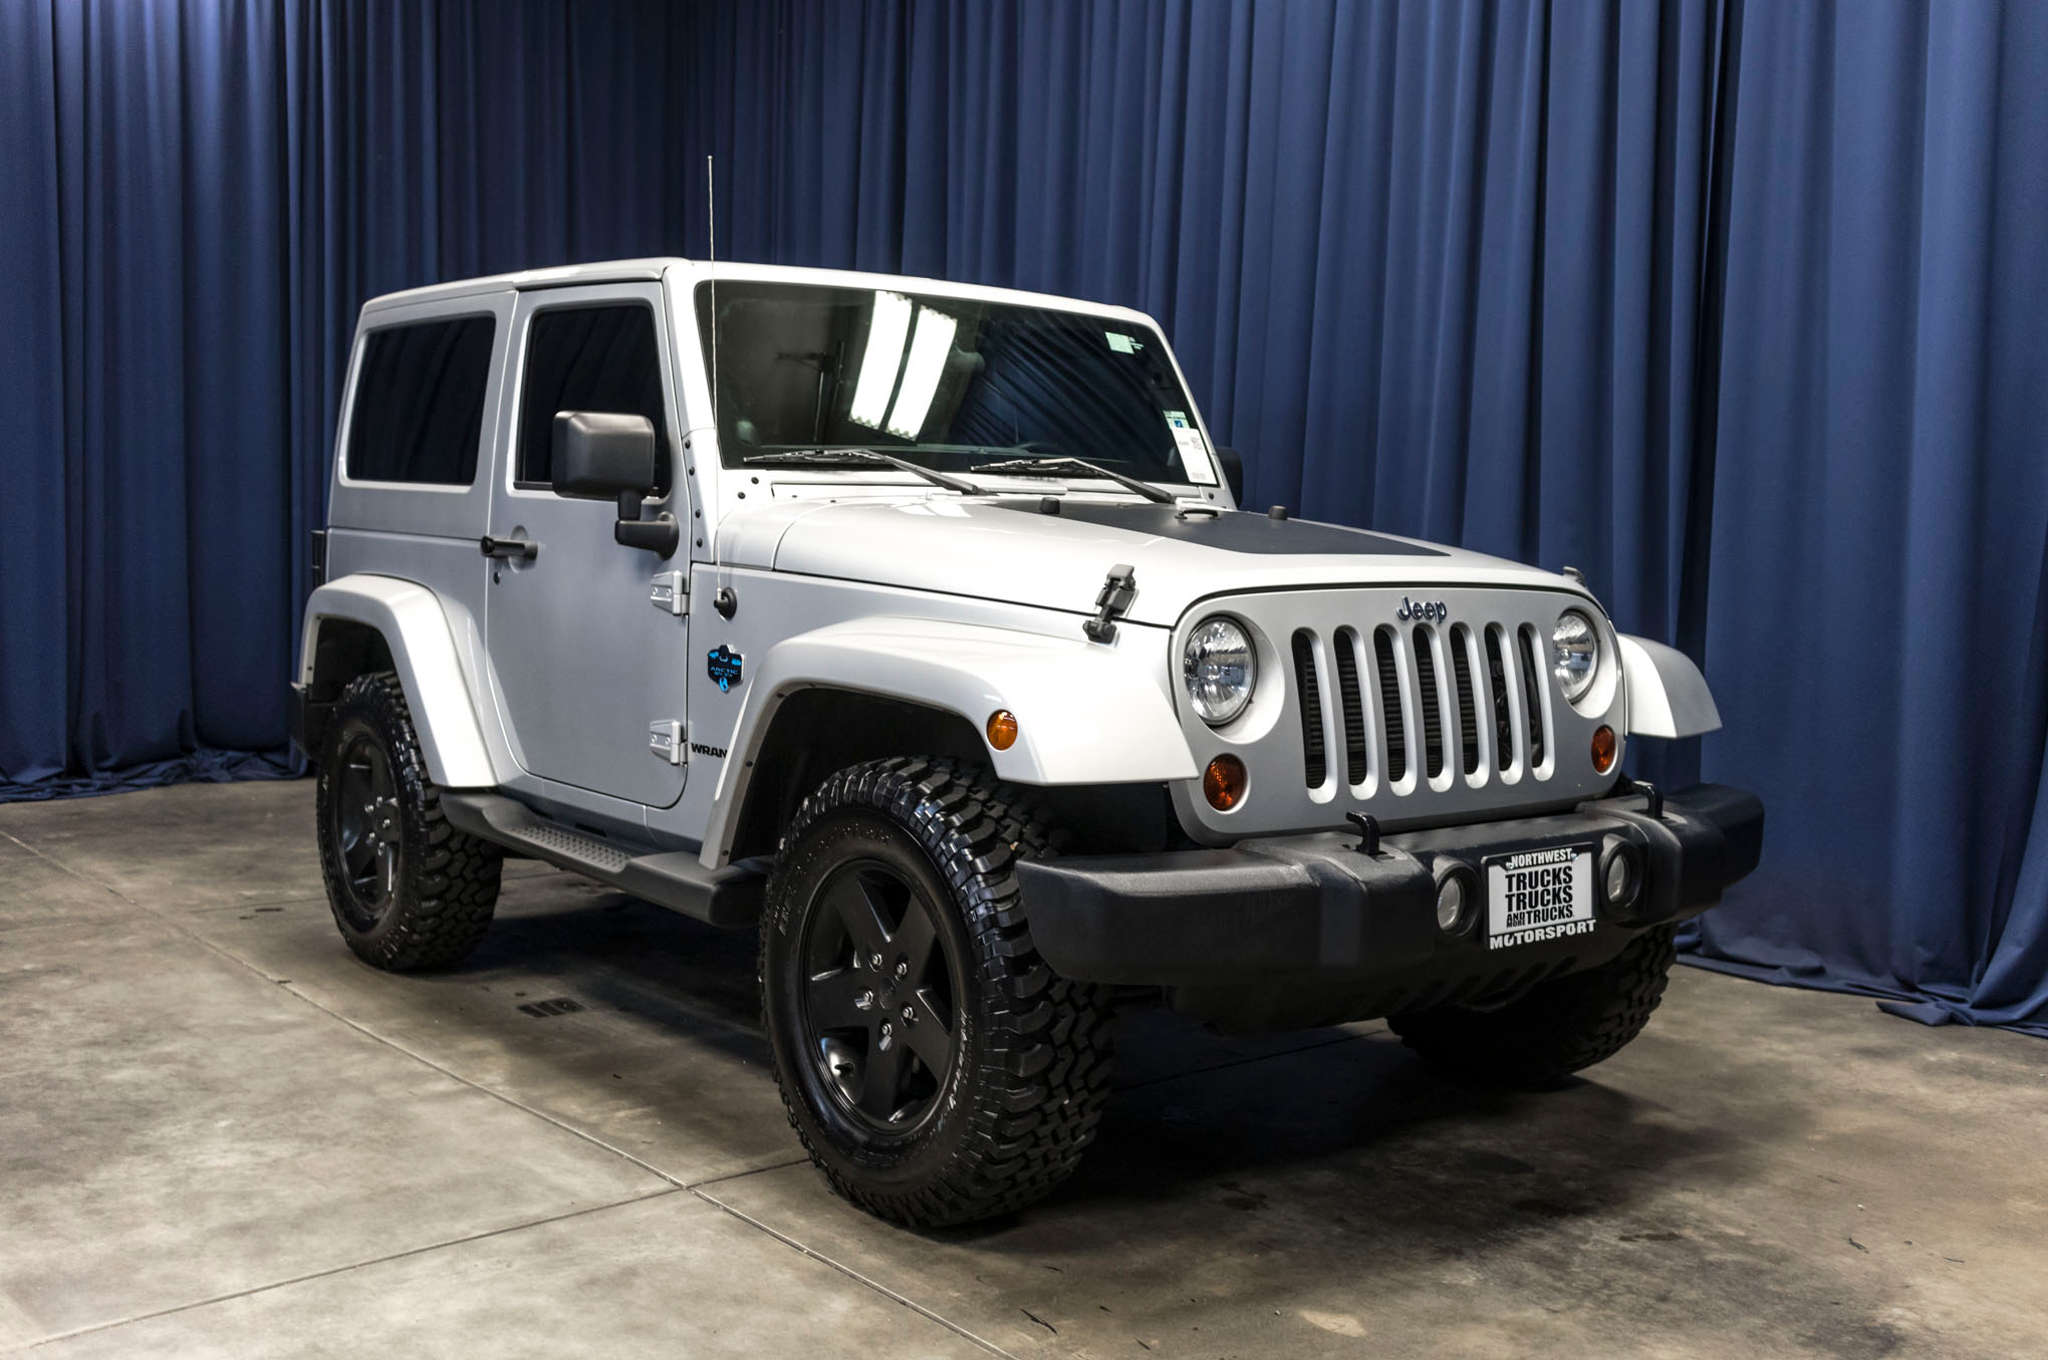 wrangler used gauteng car south jeep johannesburg view usedcarsouthafrica com in for sale africa city usedcars